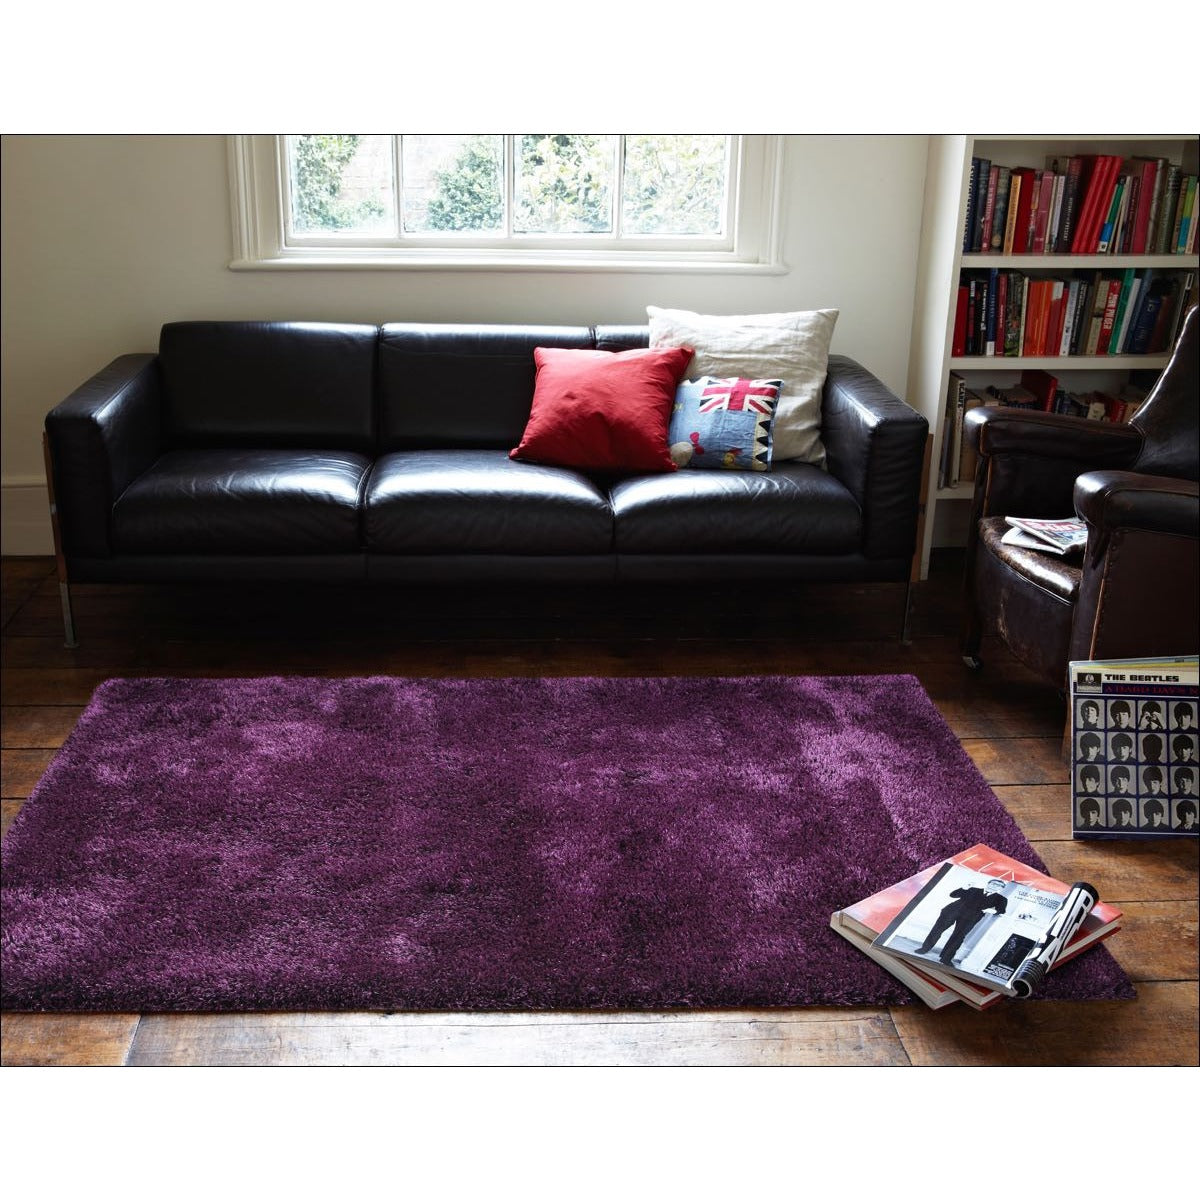 palos eggplant purple modern plush microfibre polyester shaggy rug rugs of beauty